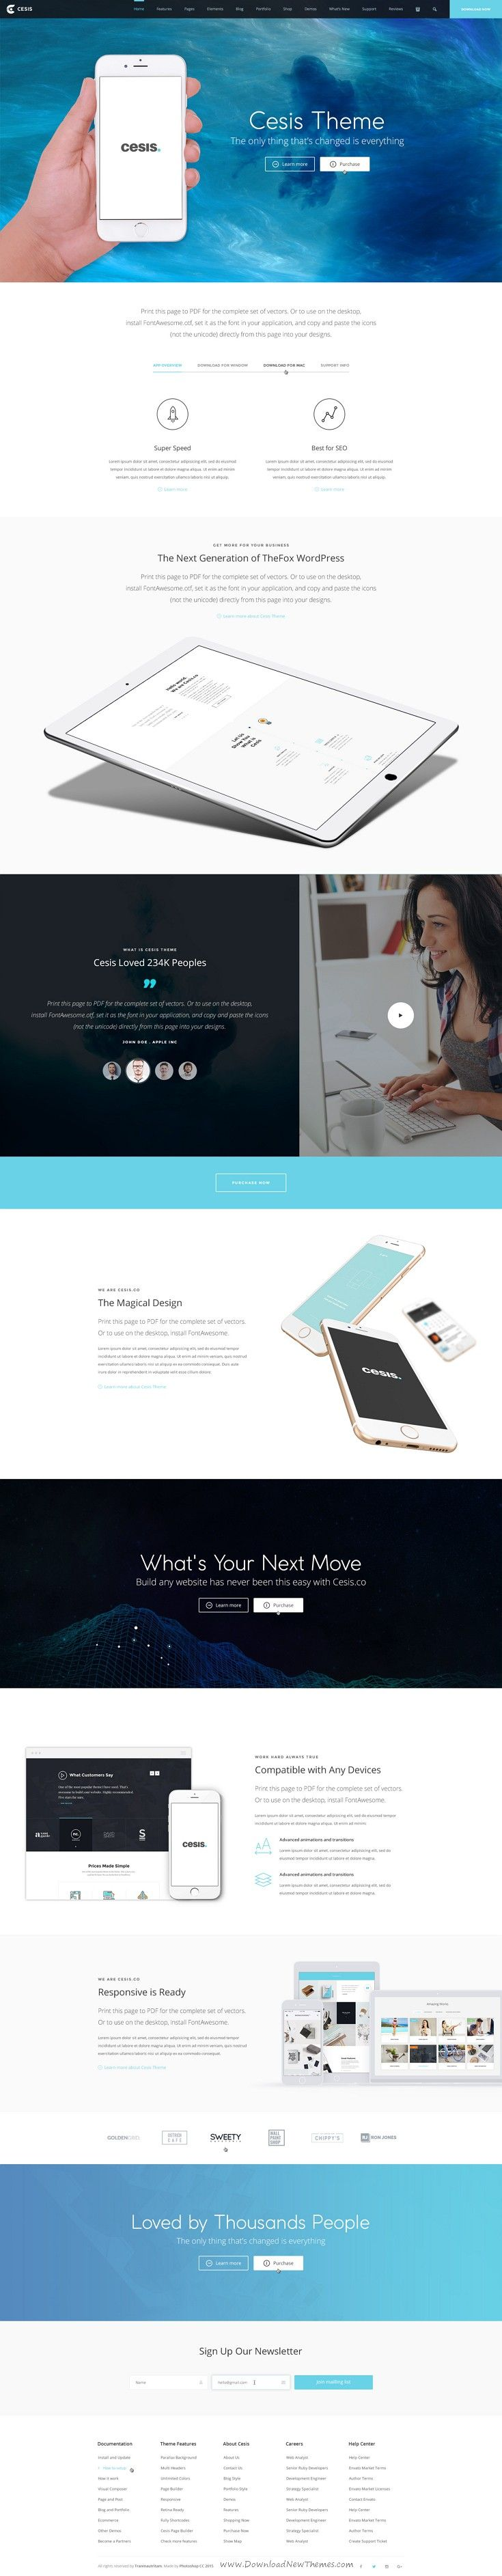 Website Template 99 Best Website Template Concepts Images On Pinterest  Website